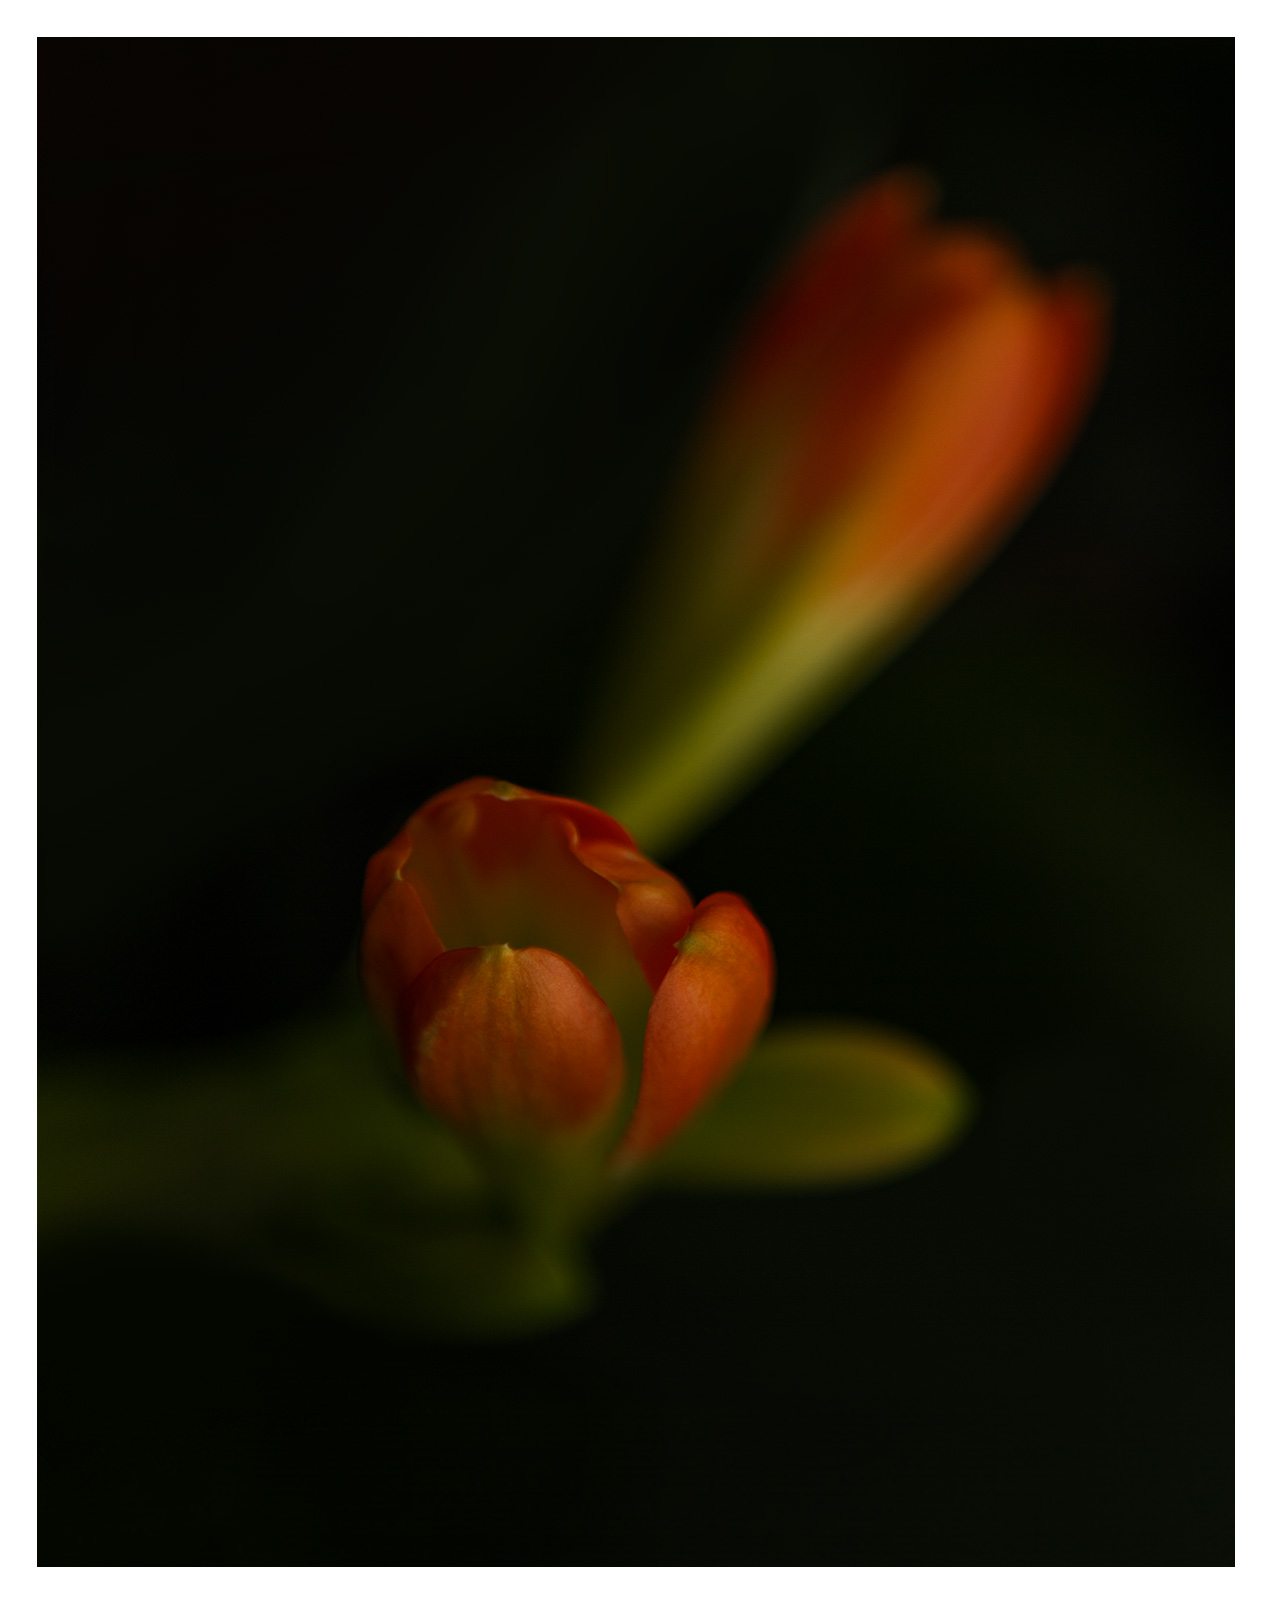 Sort painterly image of Sunset Orange Freesia against a dark background like oil painting